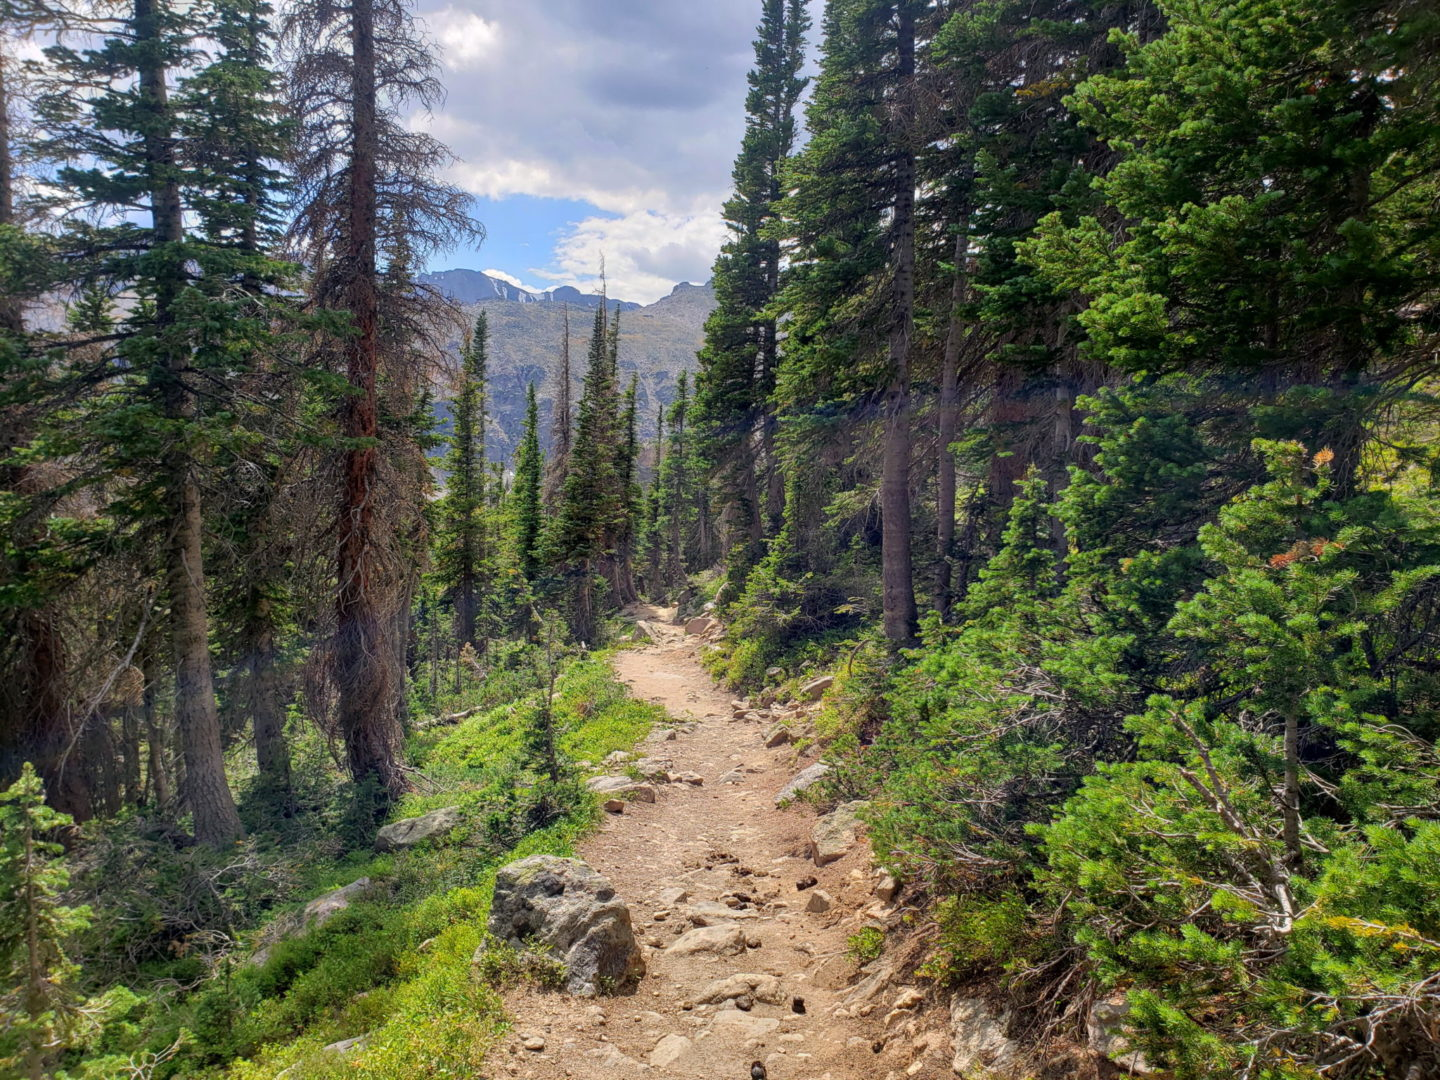 The Flattop Mountain trail